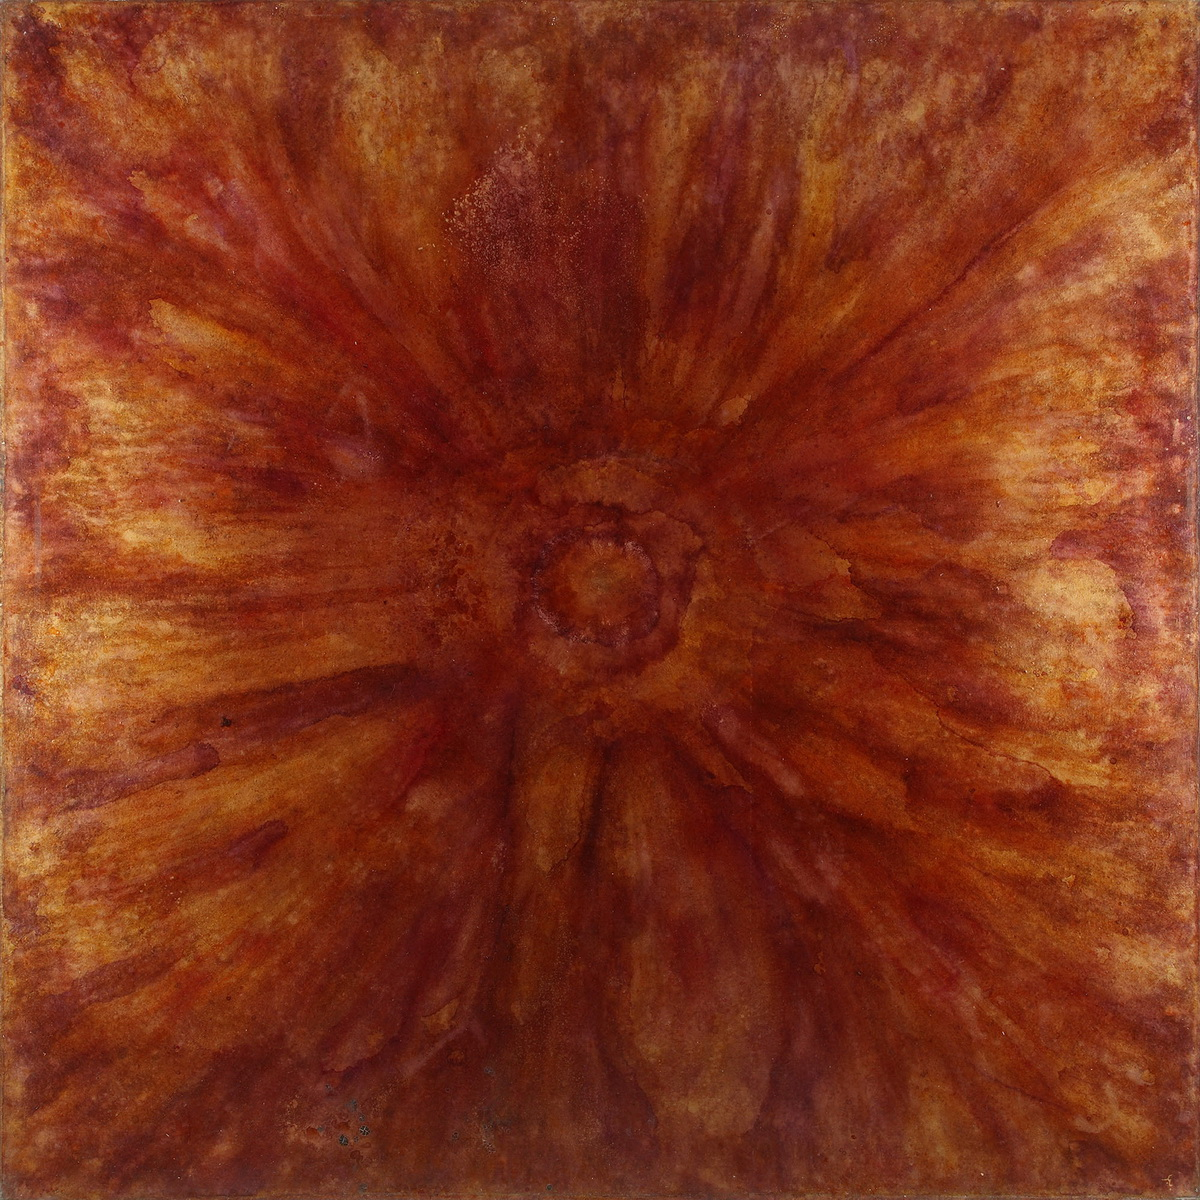 Creation-5-1999-acrylic-on-canvas-200x200-cm-80x80-inches